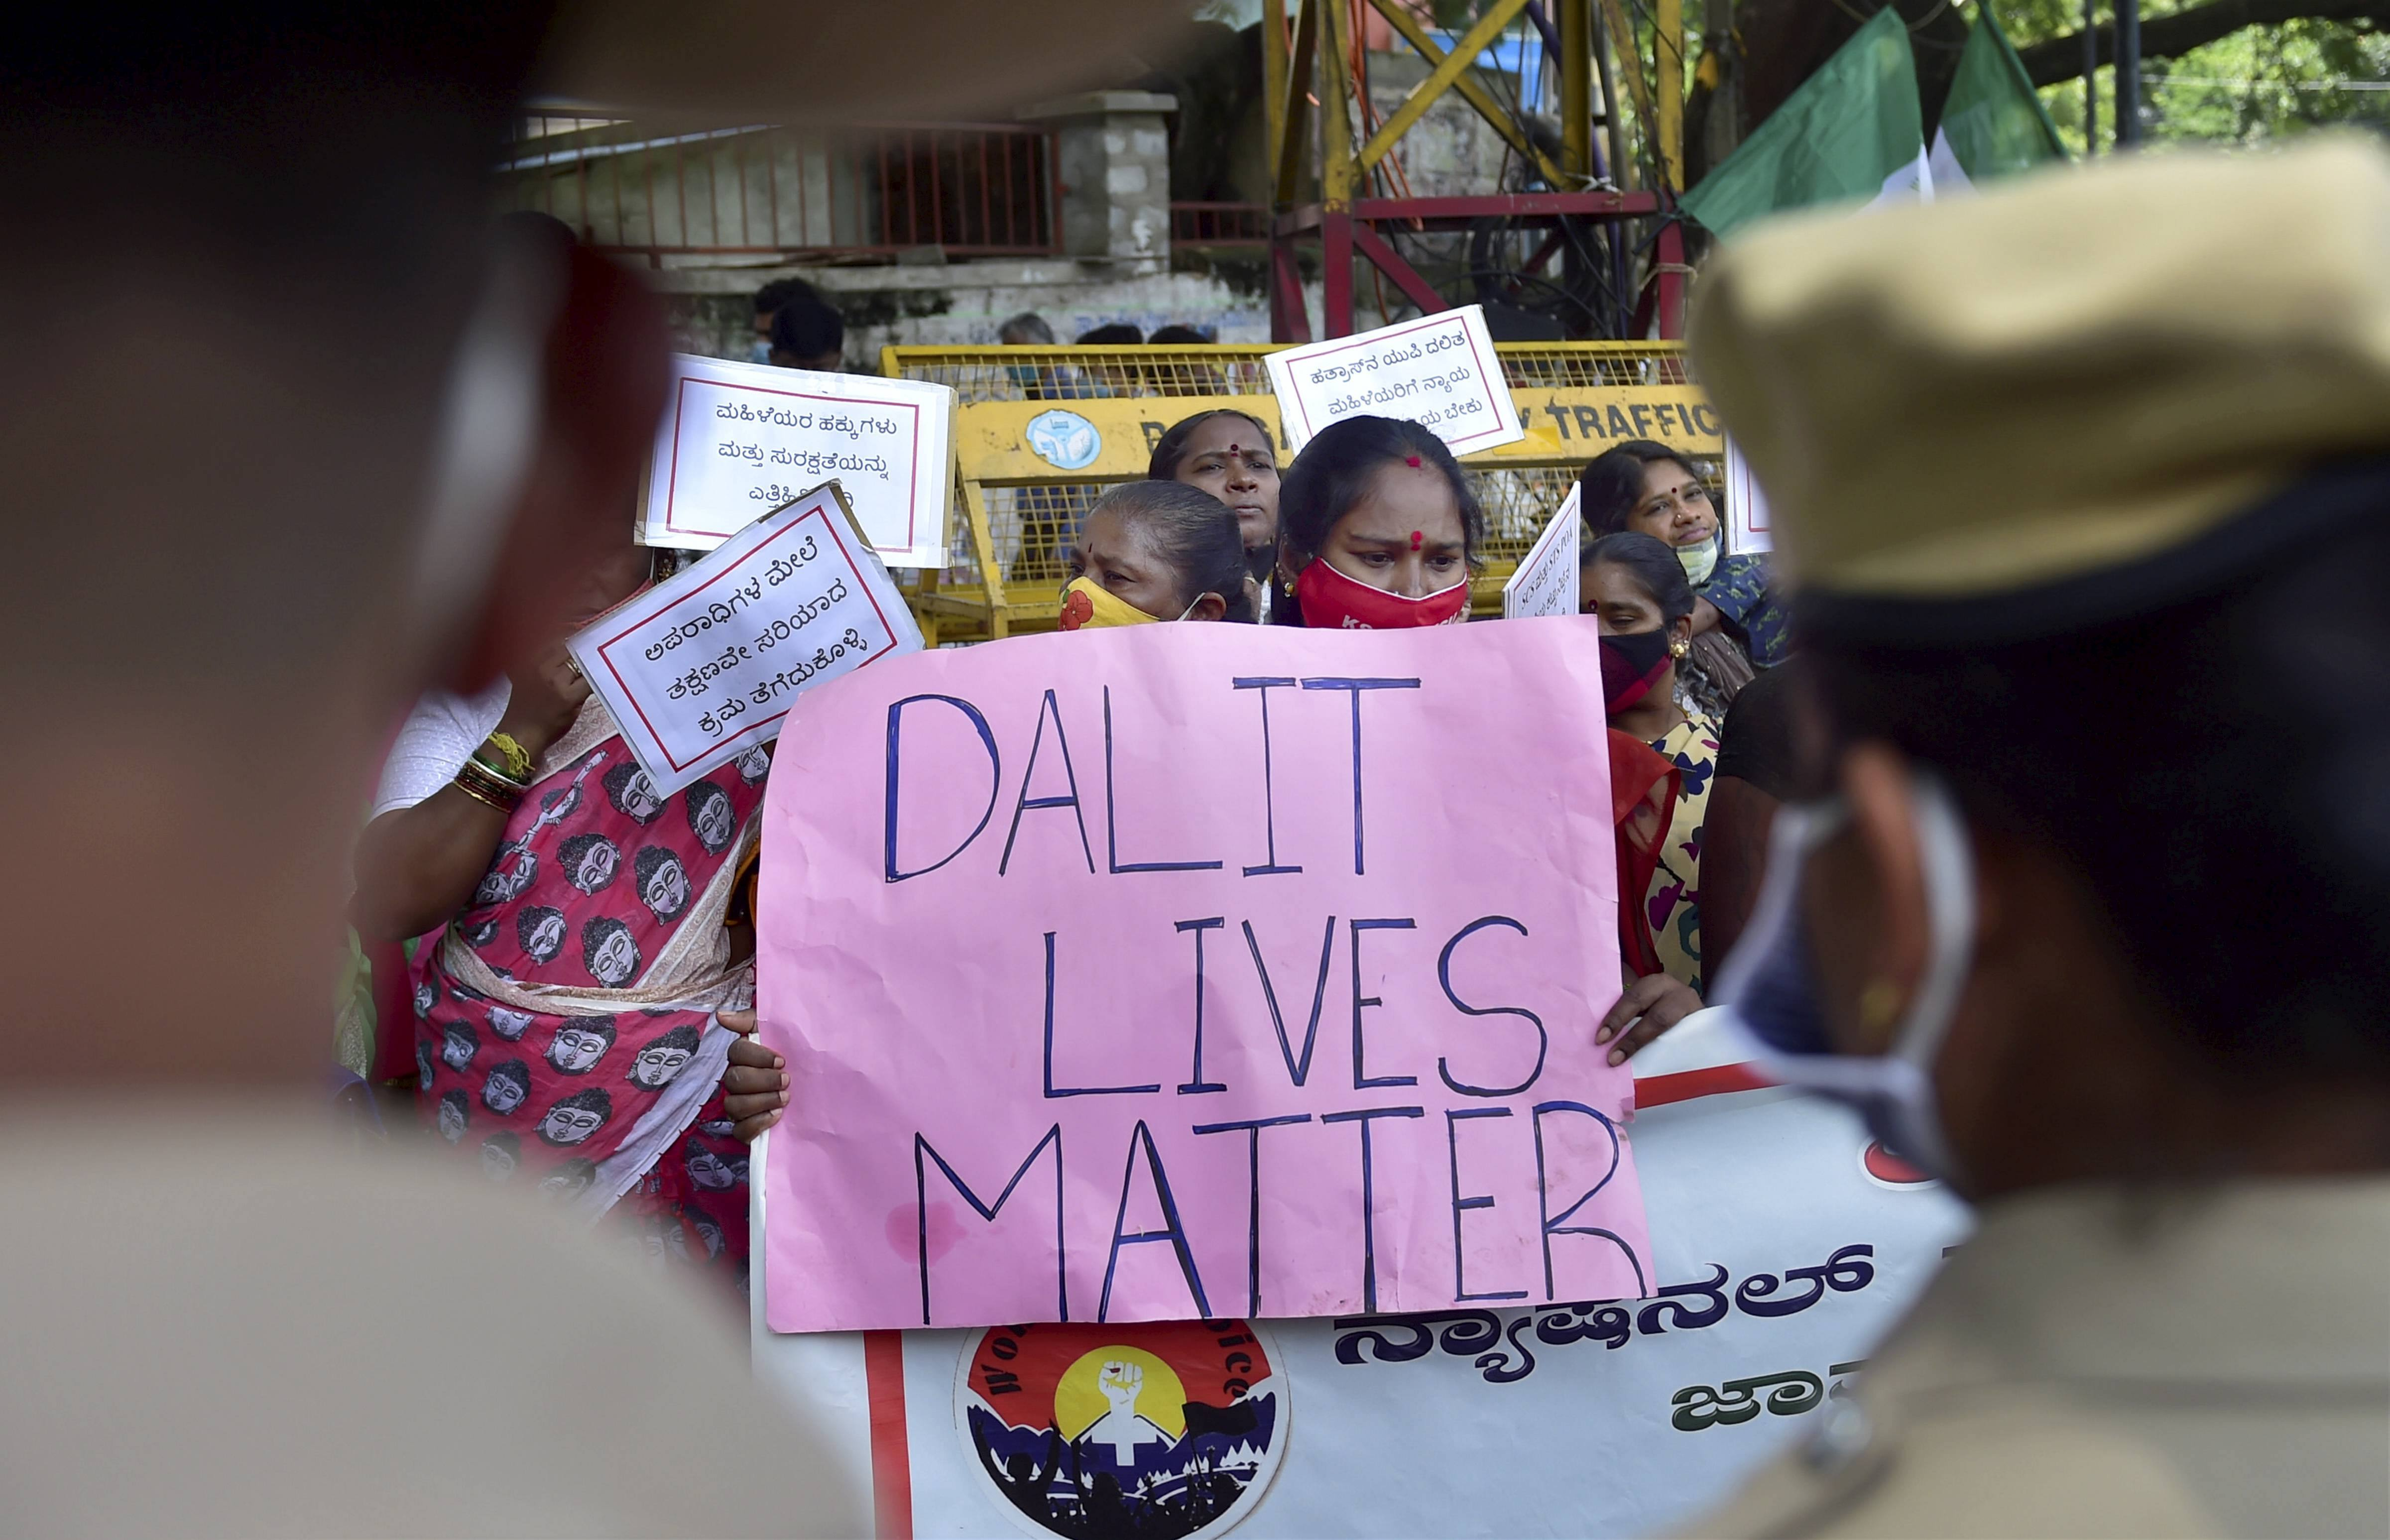 Bengaluru: Janata Dal (S) women workers along with other activists display placards and raise slogans during a protest demanding justice for Hathras incident victim, in Bengaluru, Saturday, Oct. 3, 2020. A 19-yr old Dalit woman of Hathras died allegedly after being gan-raped two weeks ago. (PTI Photo/Shailendra Bhojak)(PTI03-10-2020_000125B)